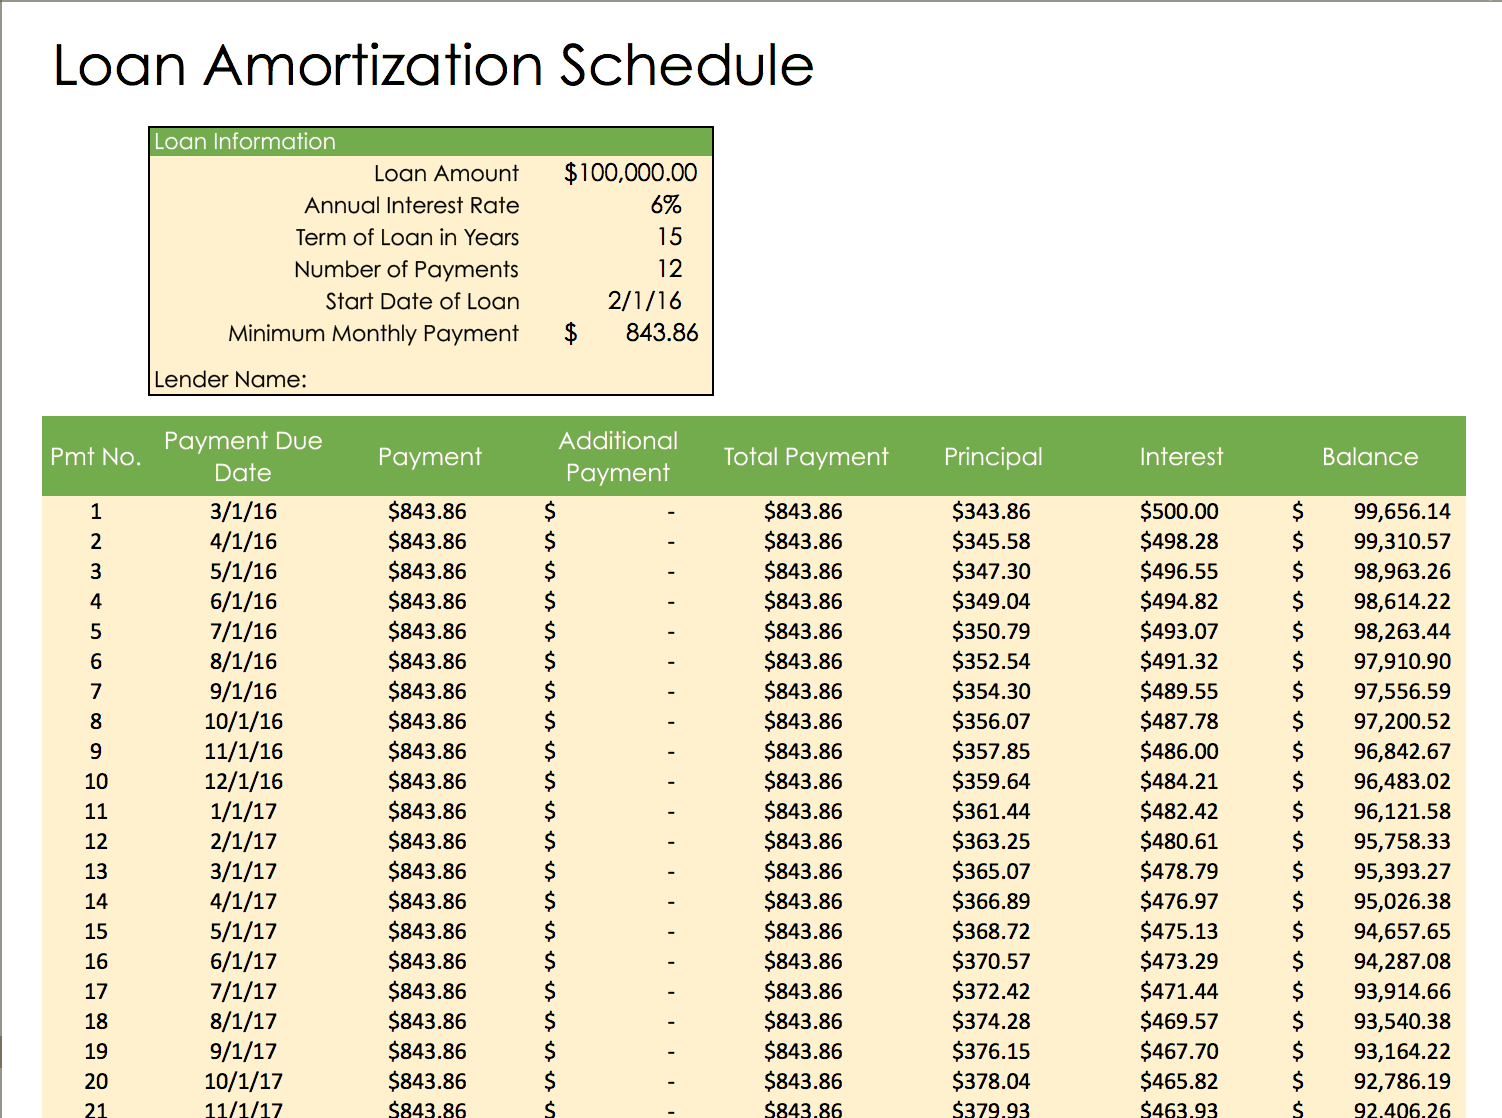 Free weekly schedule templates for excel smartsheet for Construction loan disbursement schedule